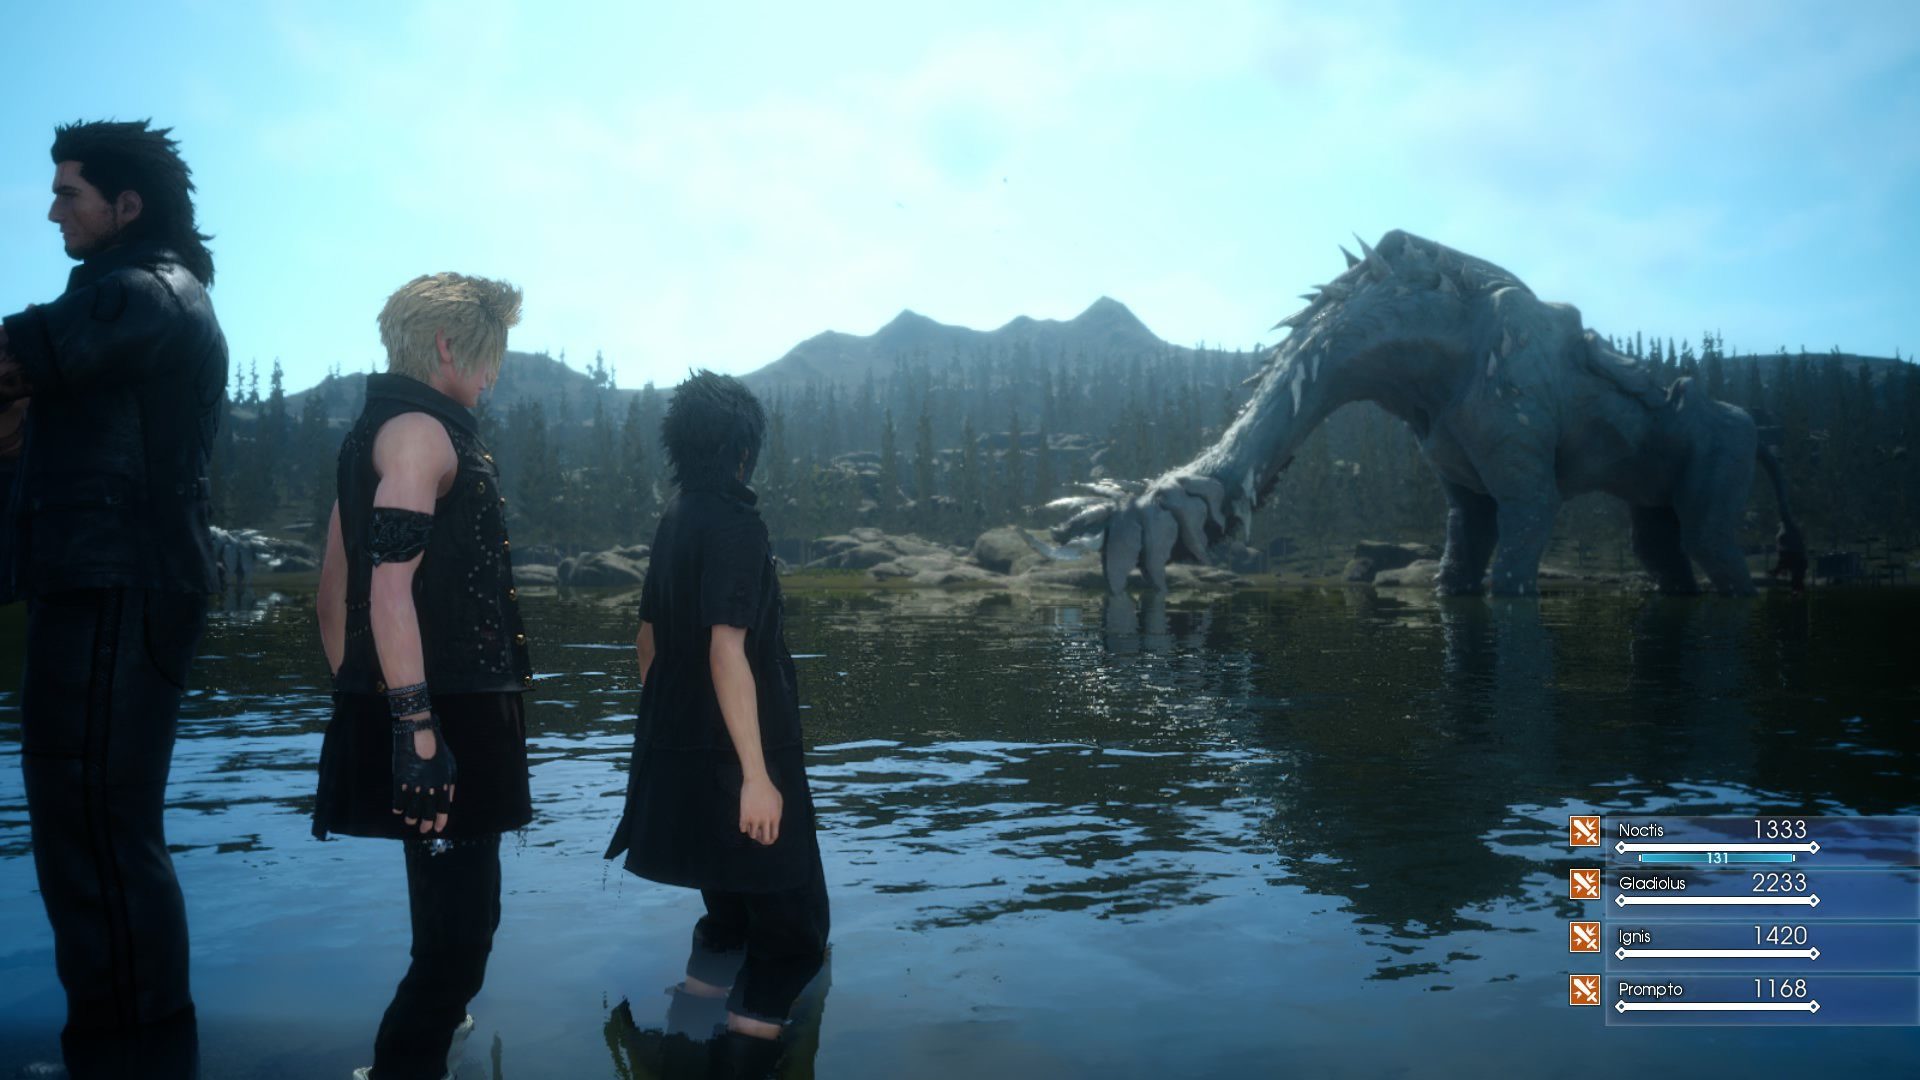 Final Fantasy XV has a release date, demo, movie, anime series, AND mobile game